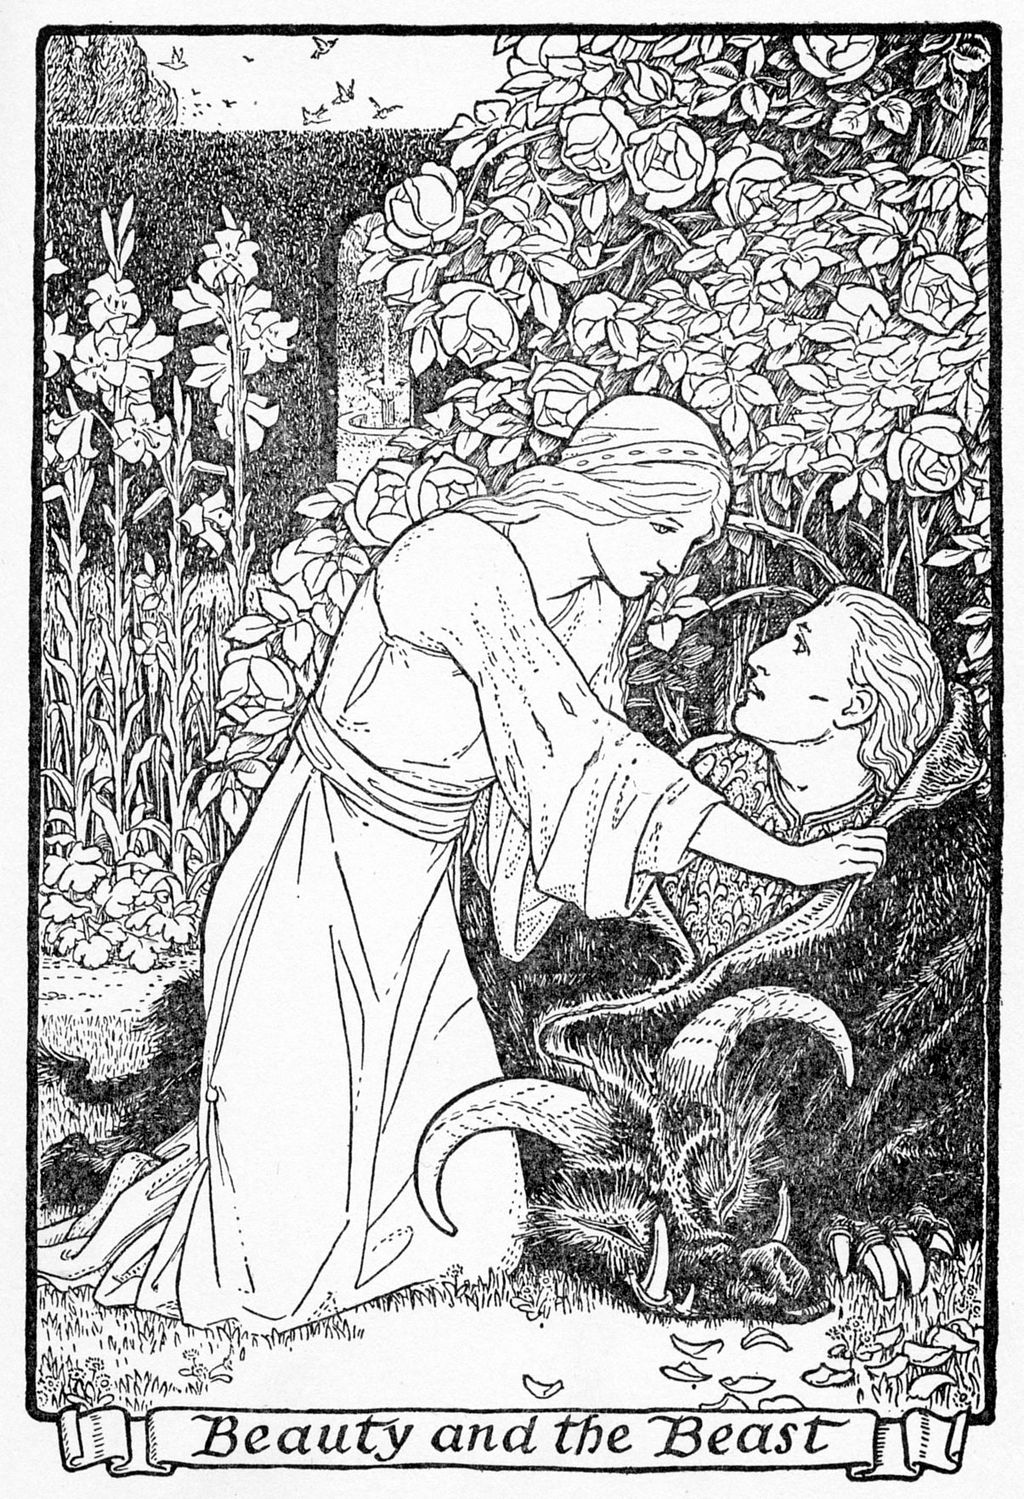 Beauty and the Beast Europa's Fairy Book Illustration